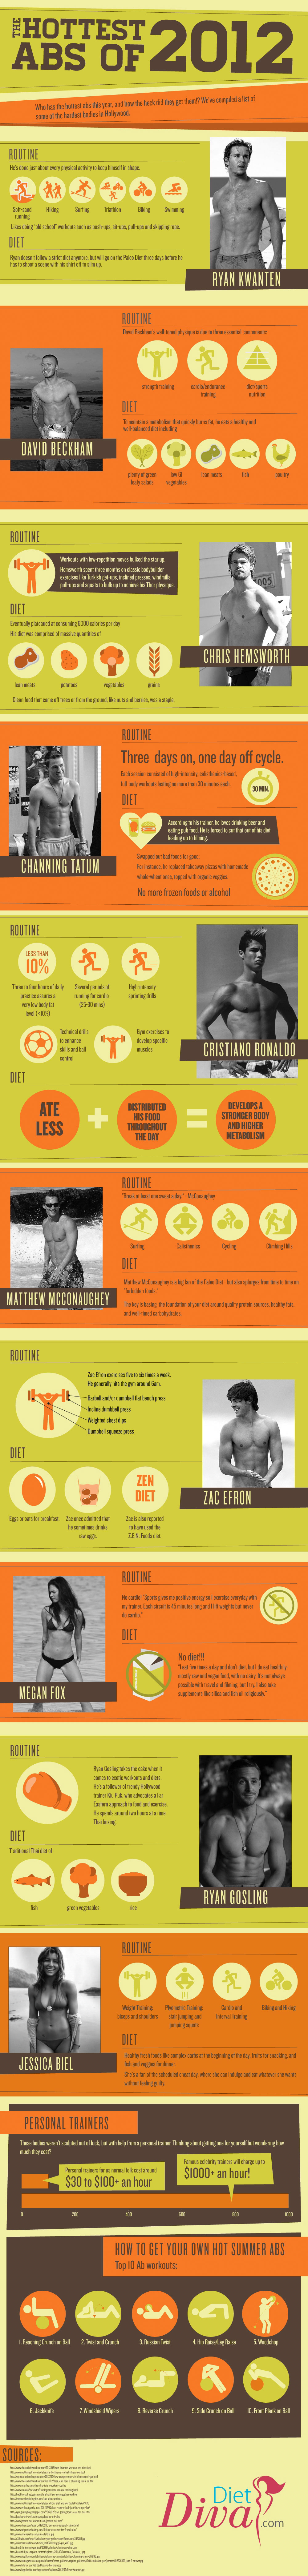 Hottest-Abs-2012-Infographic